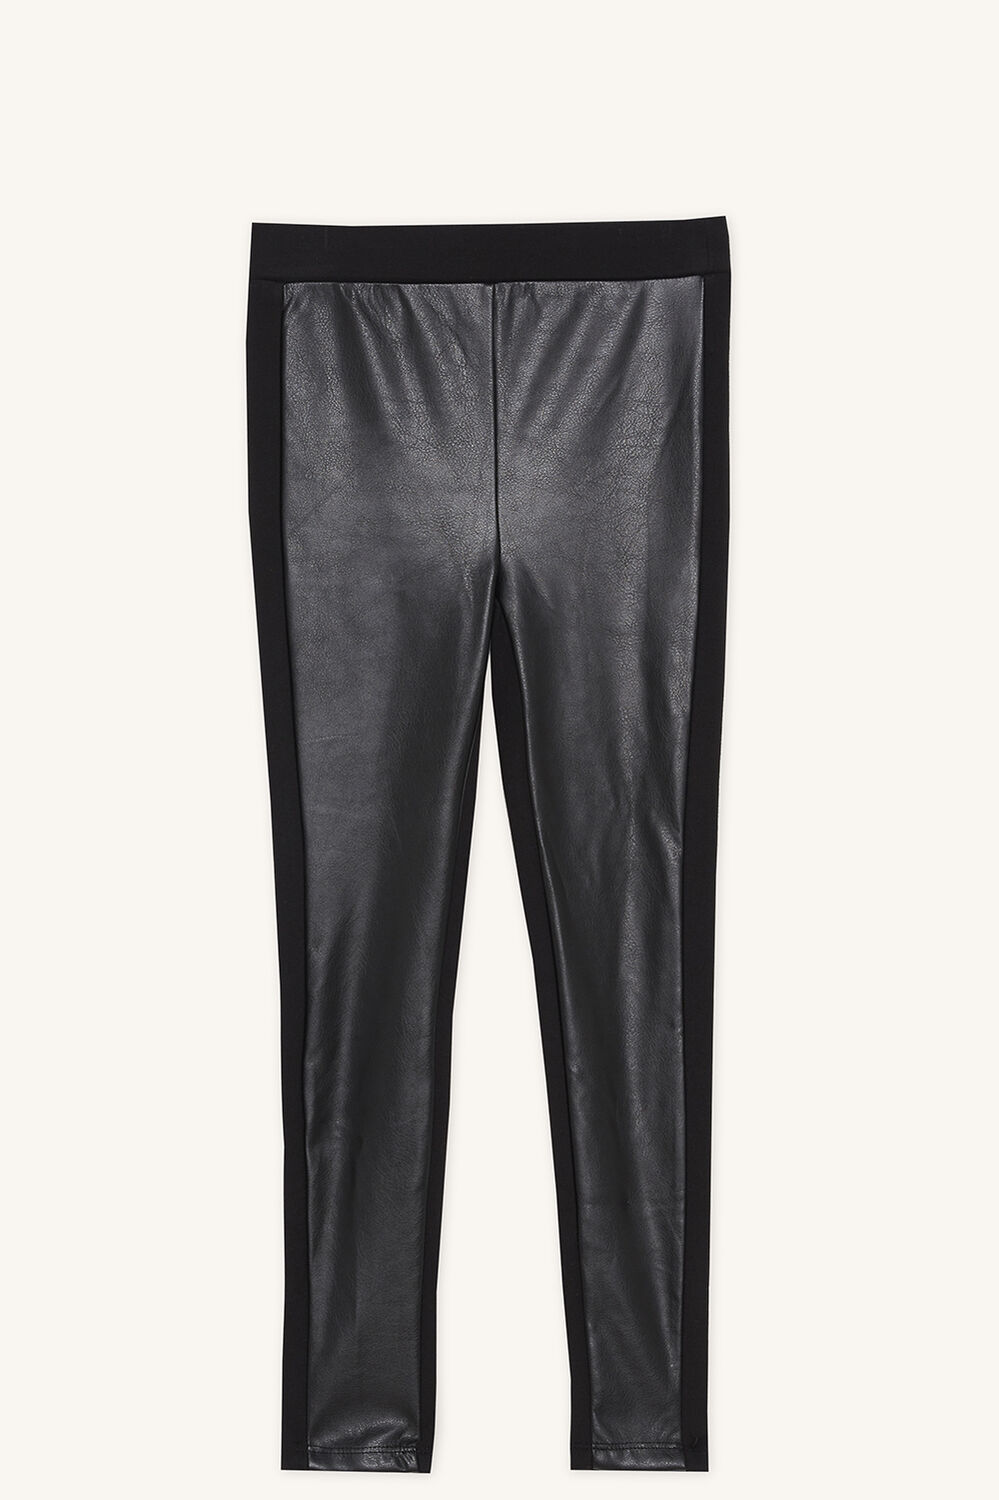 TALITA PU PANT in colour JET BLACK